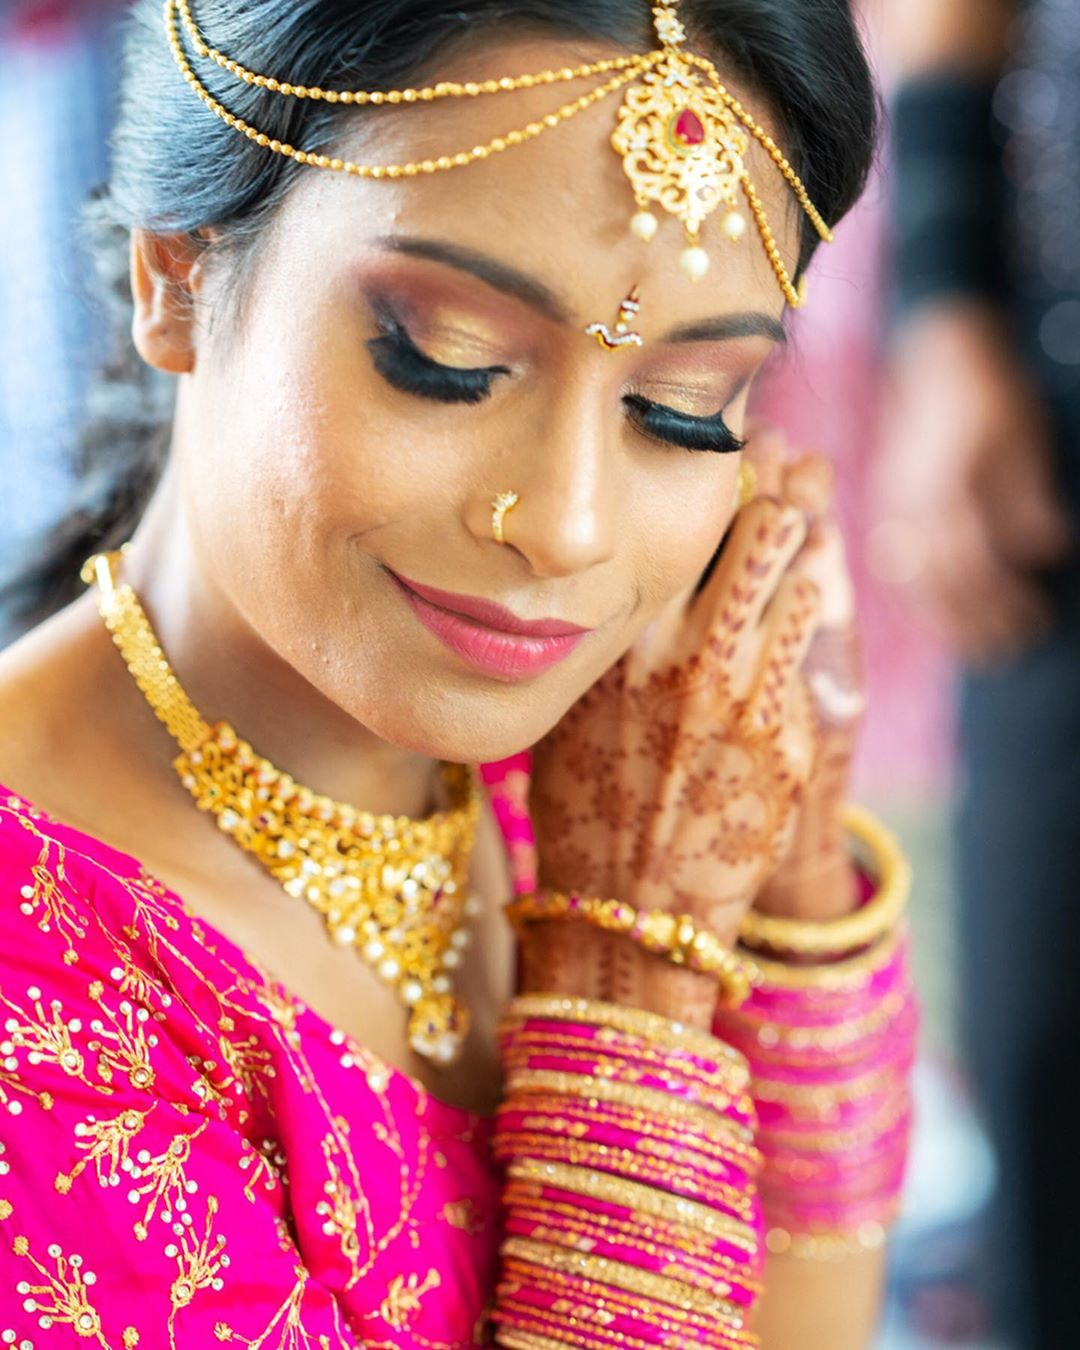 A bride smiles as she puts on an earring.